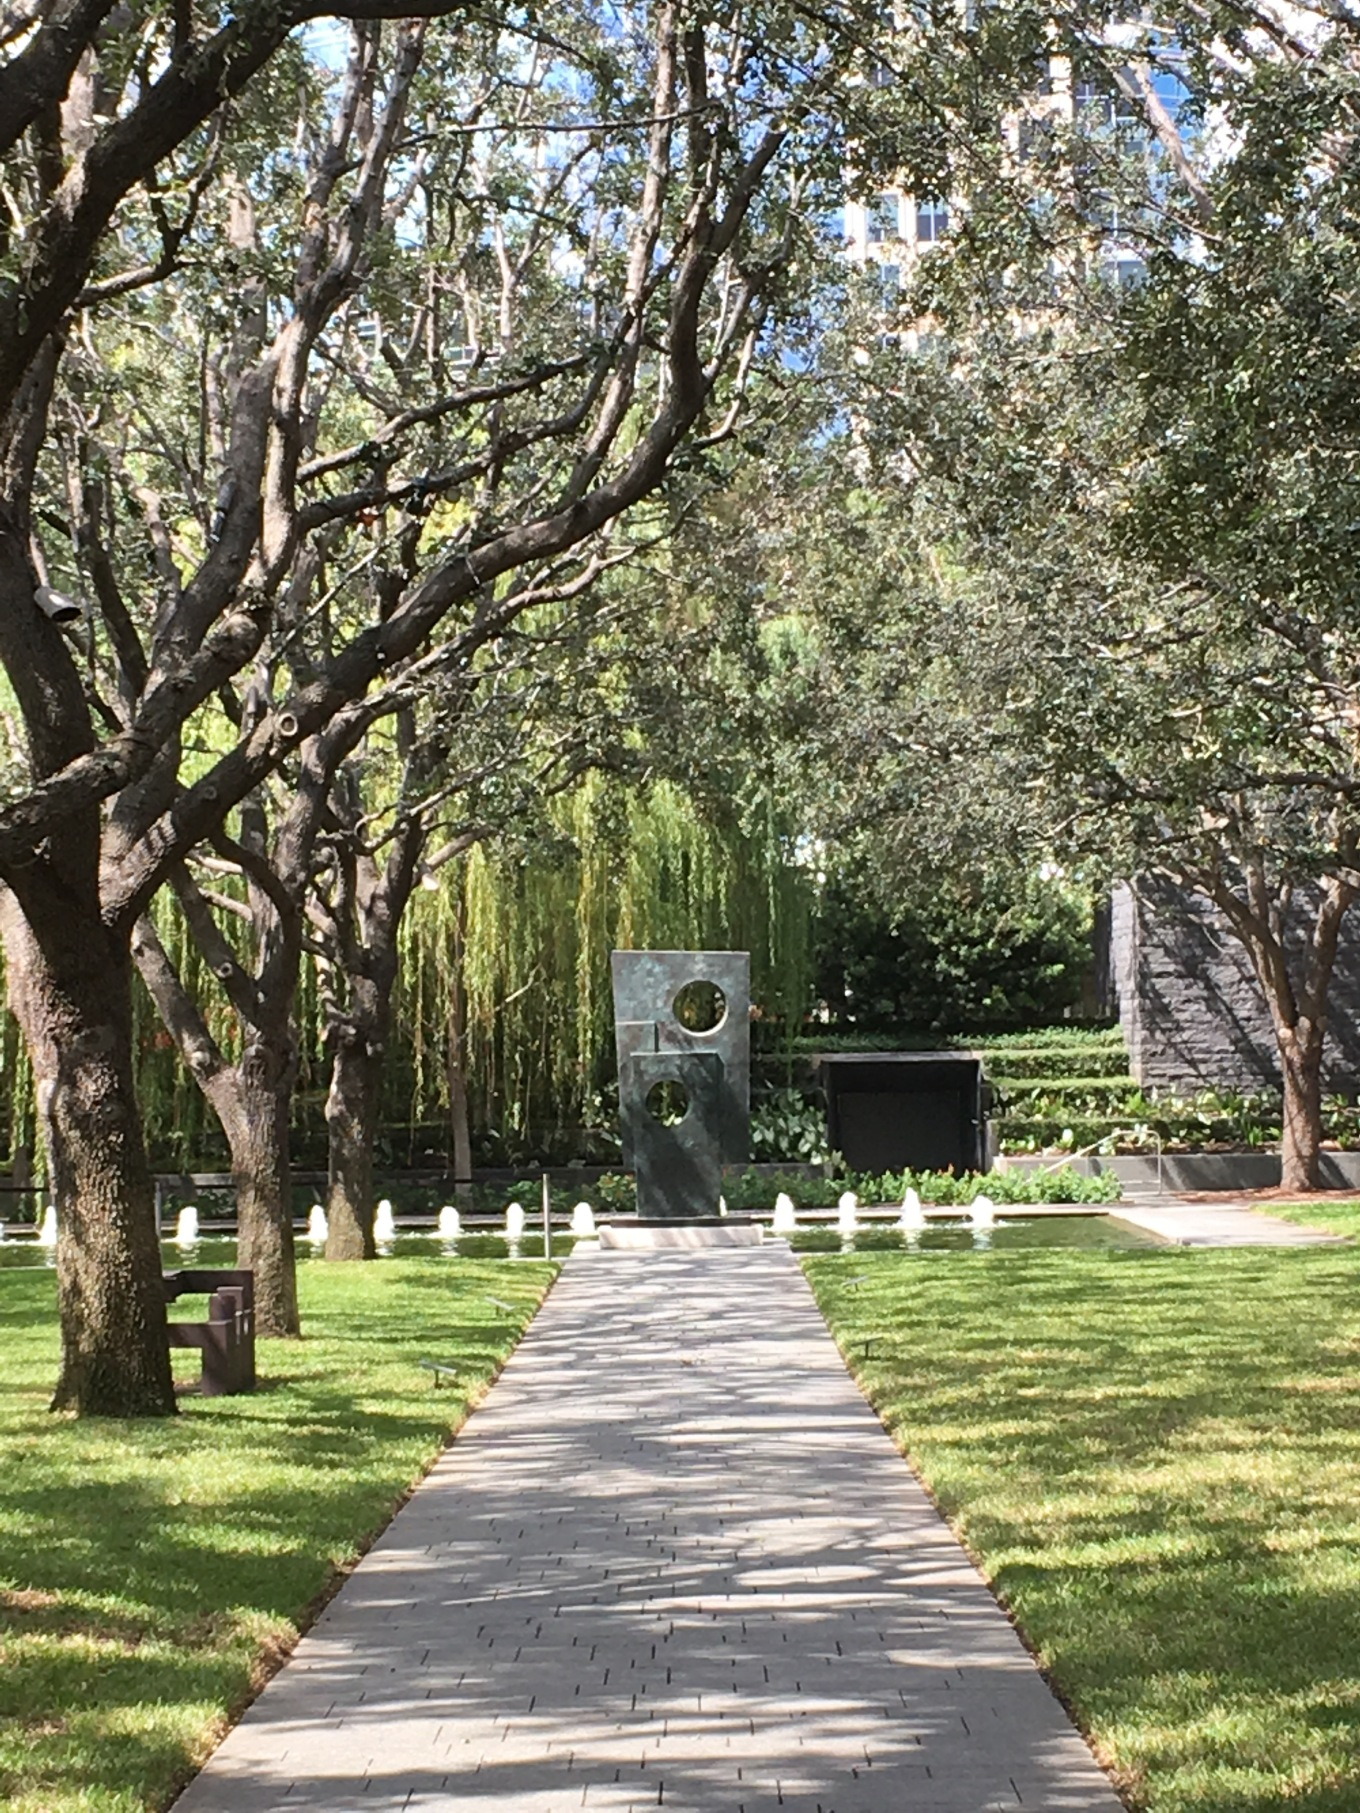 The Nasher Sculpture Center Garden